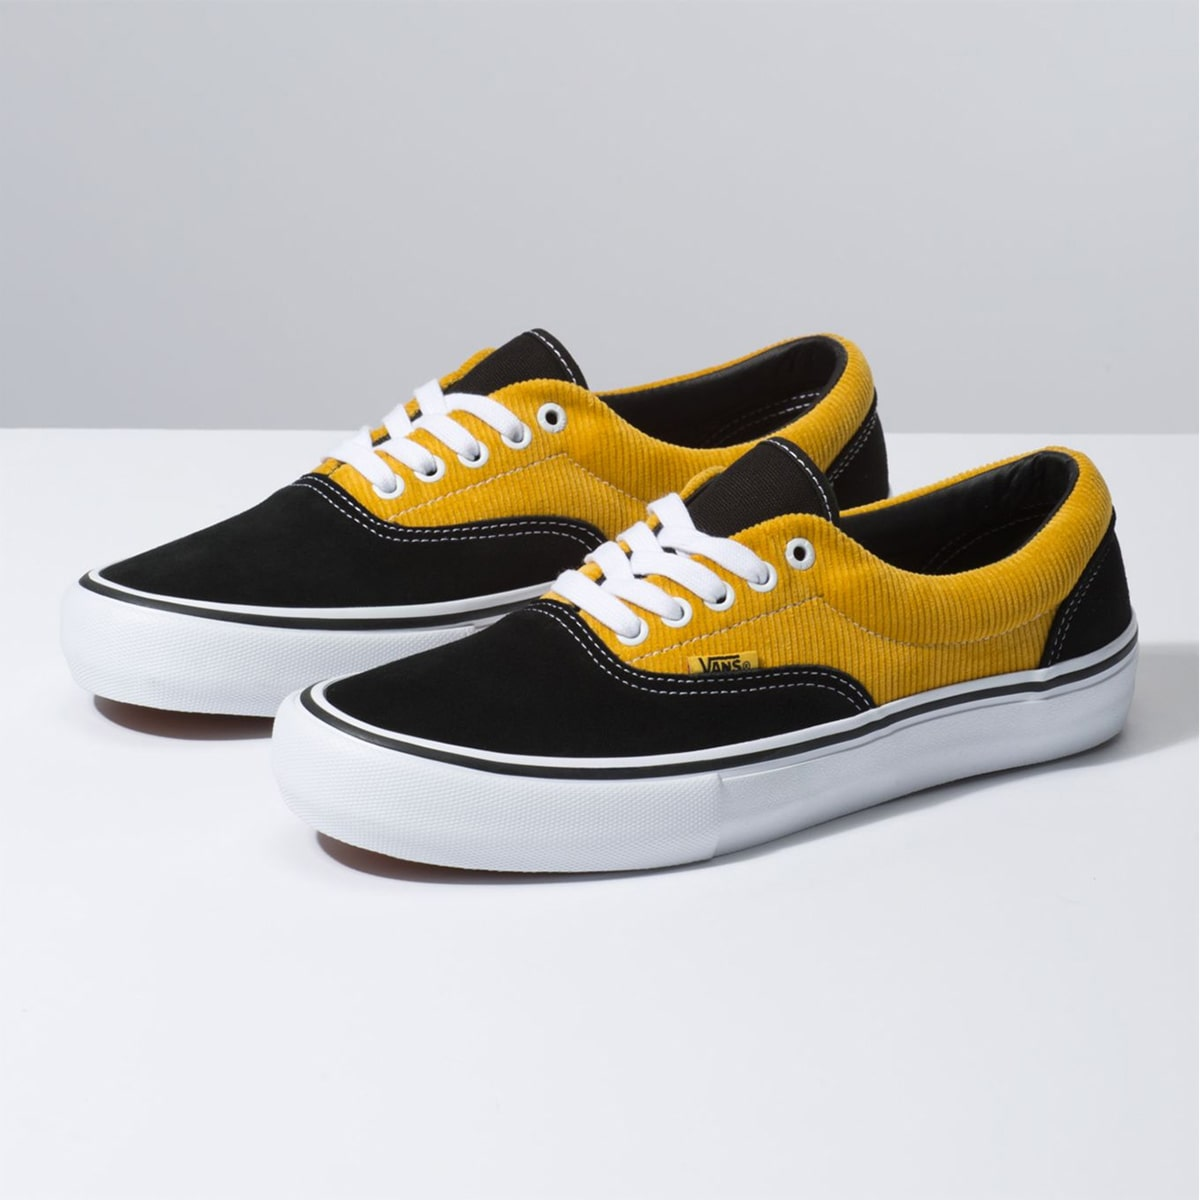 dca0a7a2c343 Available Now    Vans Classics Corduroy Pack - HOUSE OF HEAT ...